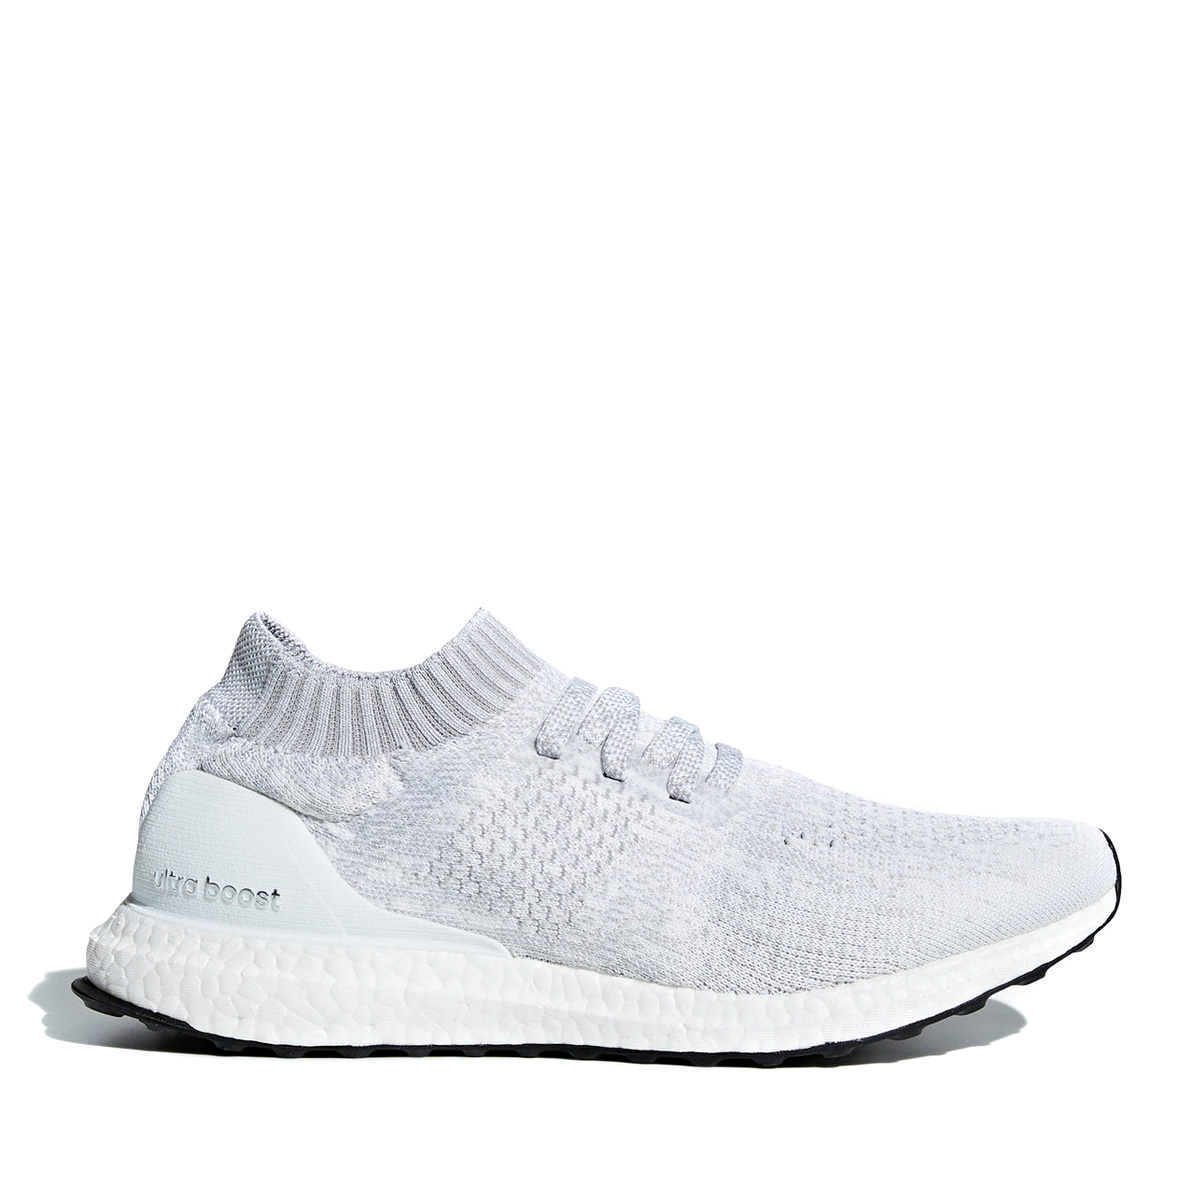 7e77f8d6f36d adidas Originals UltraBOOST Uncaged (Adidas originals ultra boost Ann  caged) Running White White Tint Core Black 18SP-I